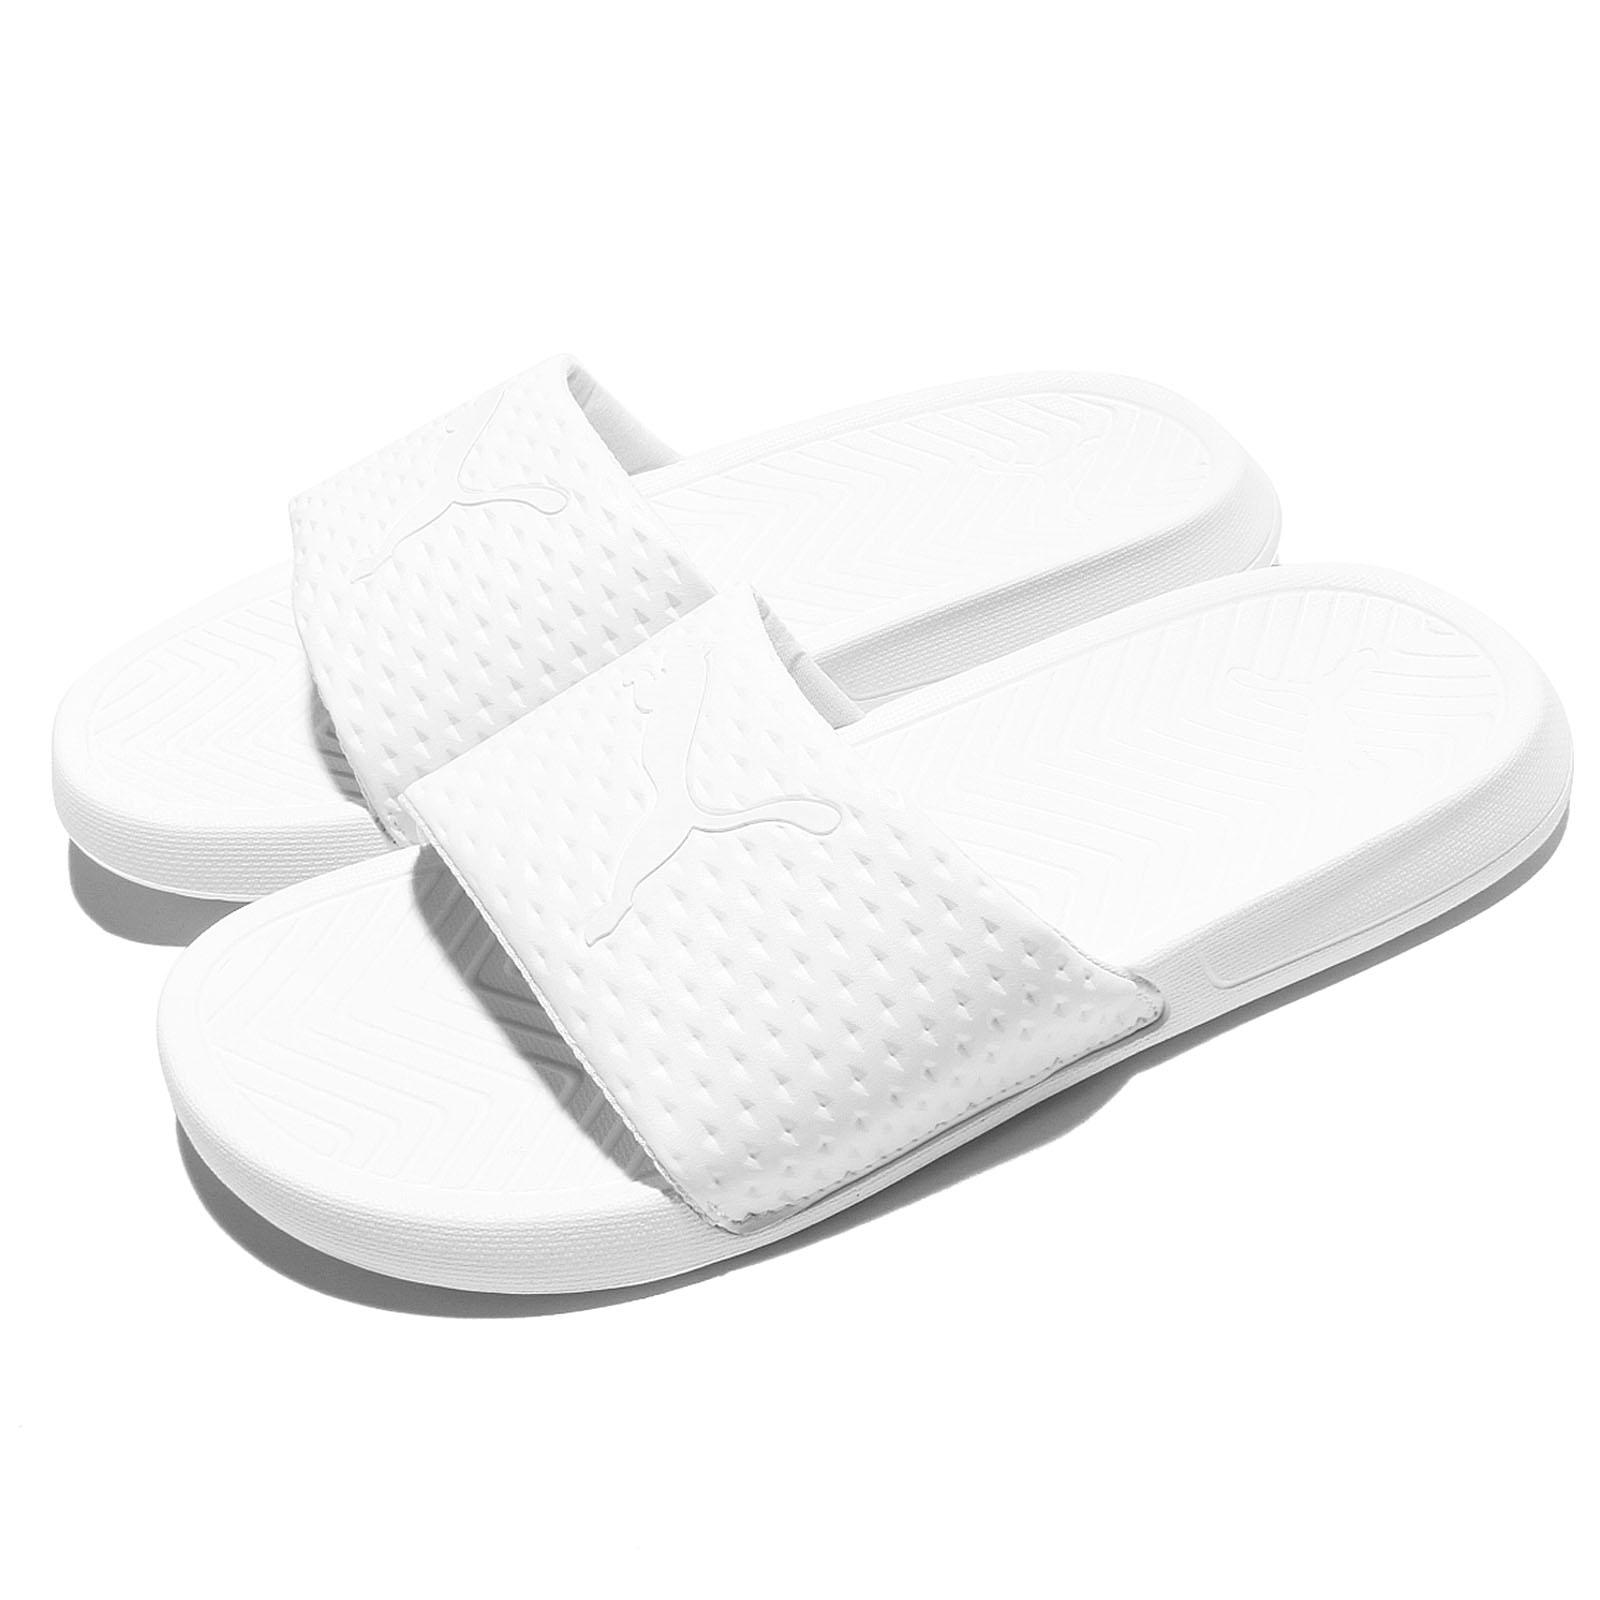 74138c63c89 Details about Puma Popcat Premium EVA Midsole Triple White Men Sandal Slides  Slipper 362458-01